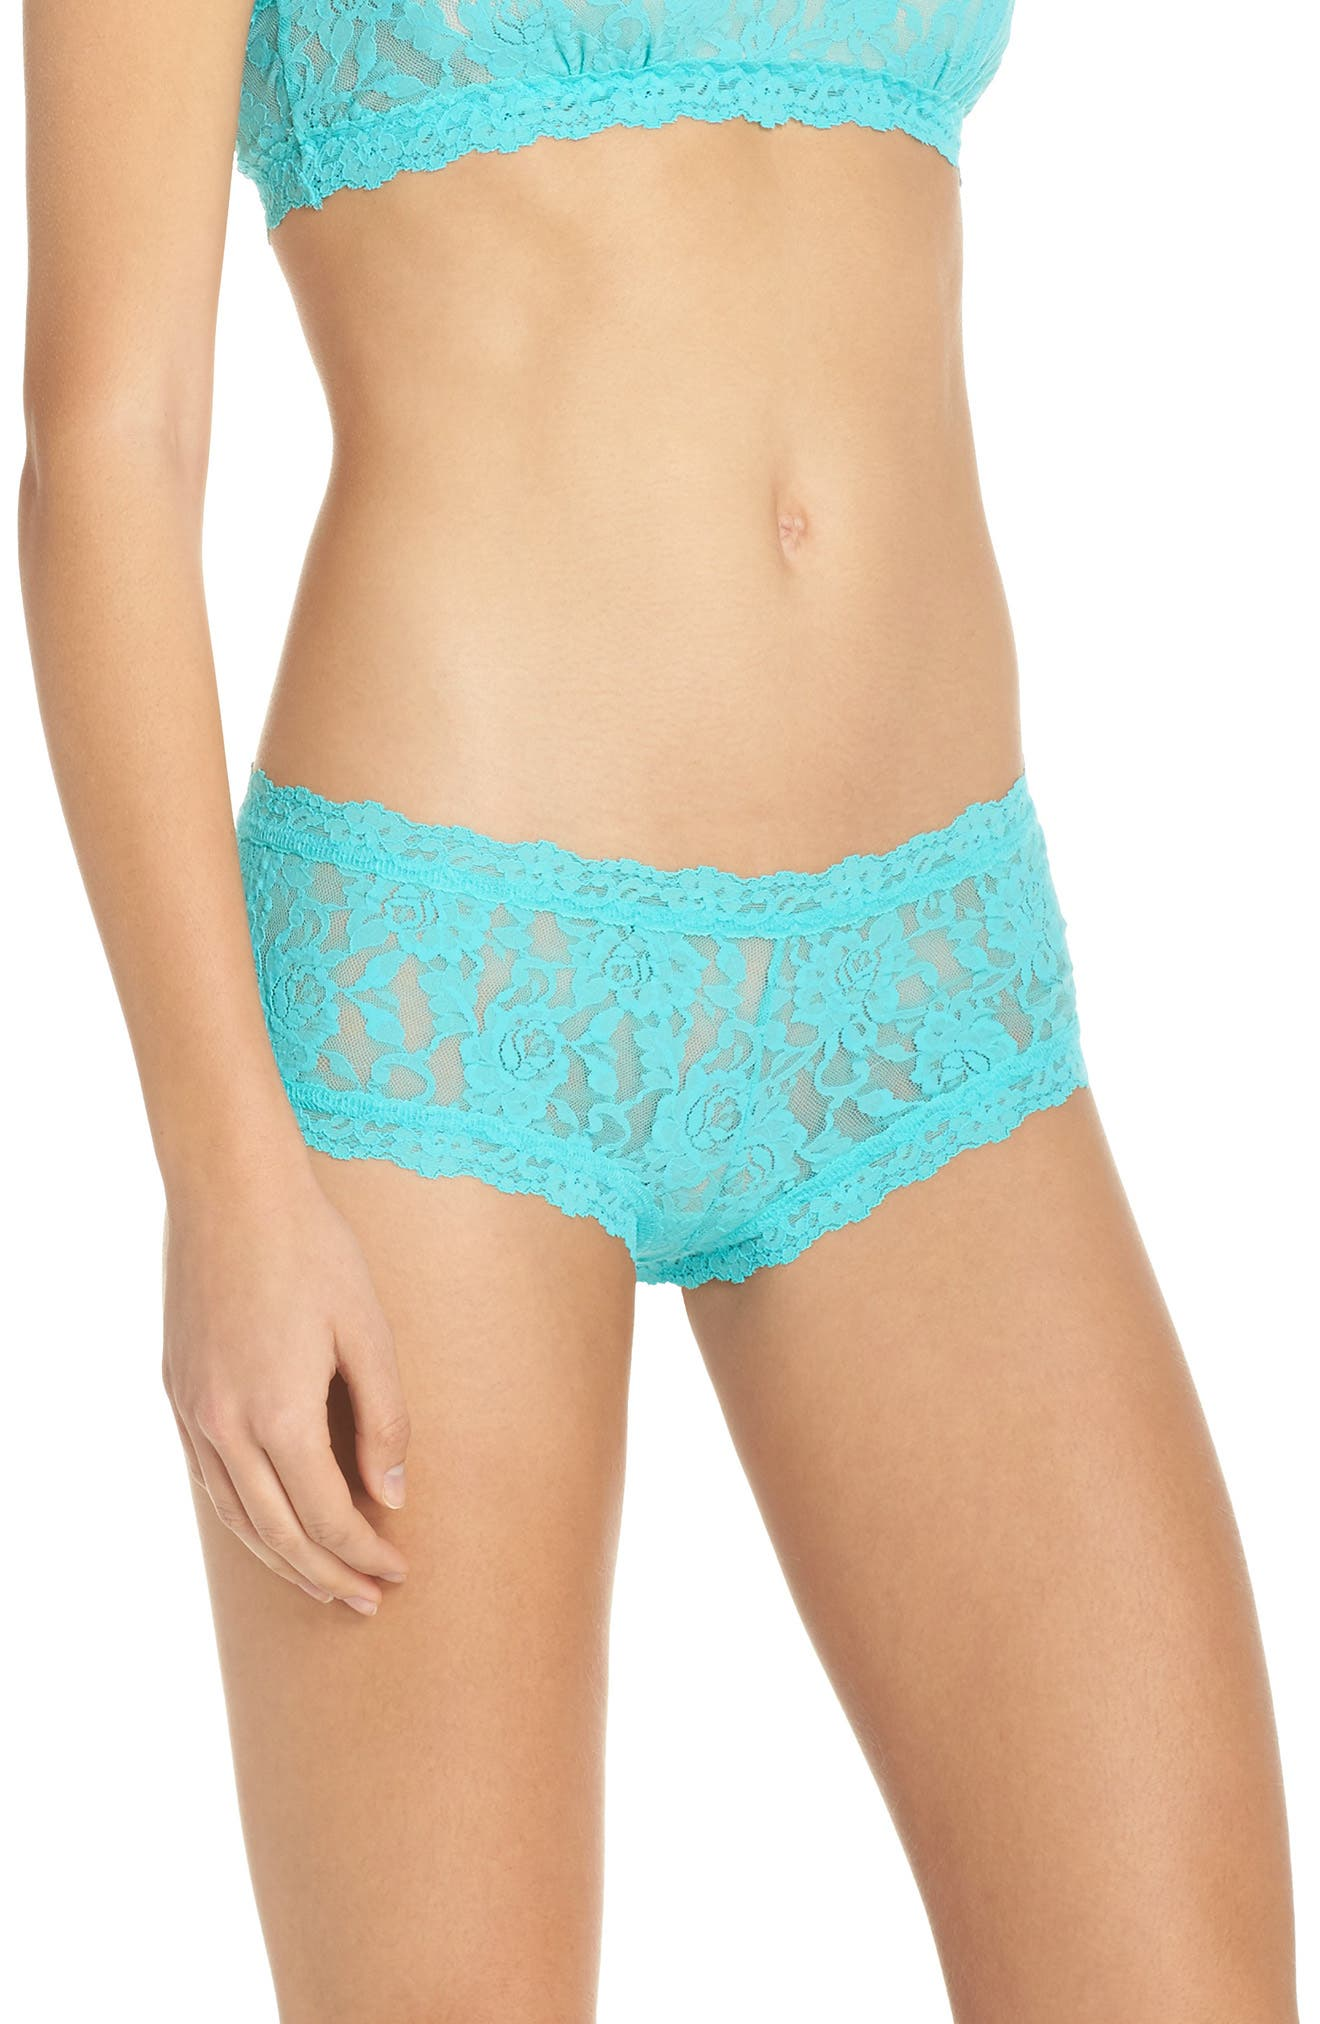 Alternate Image 3  - Hanky Panky 'Signature Lace' Boyshorts